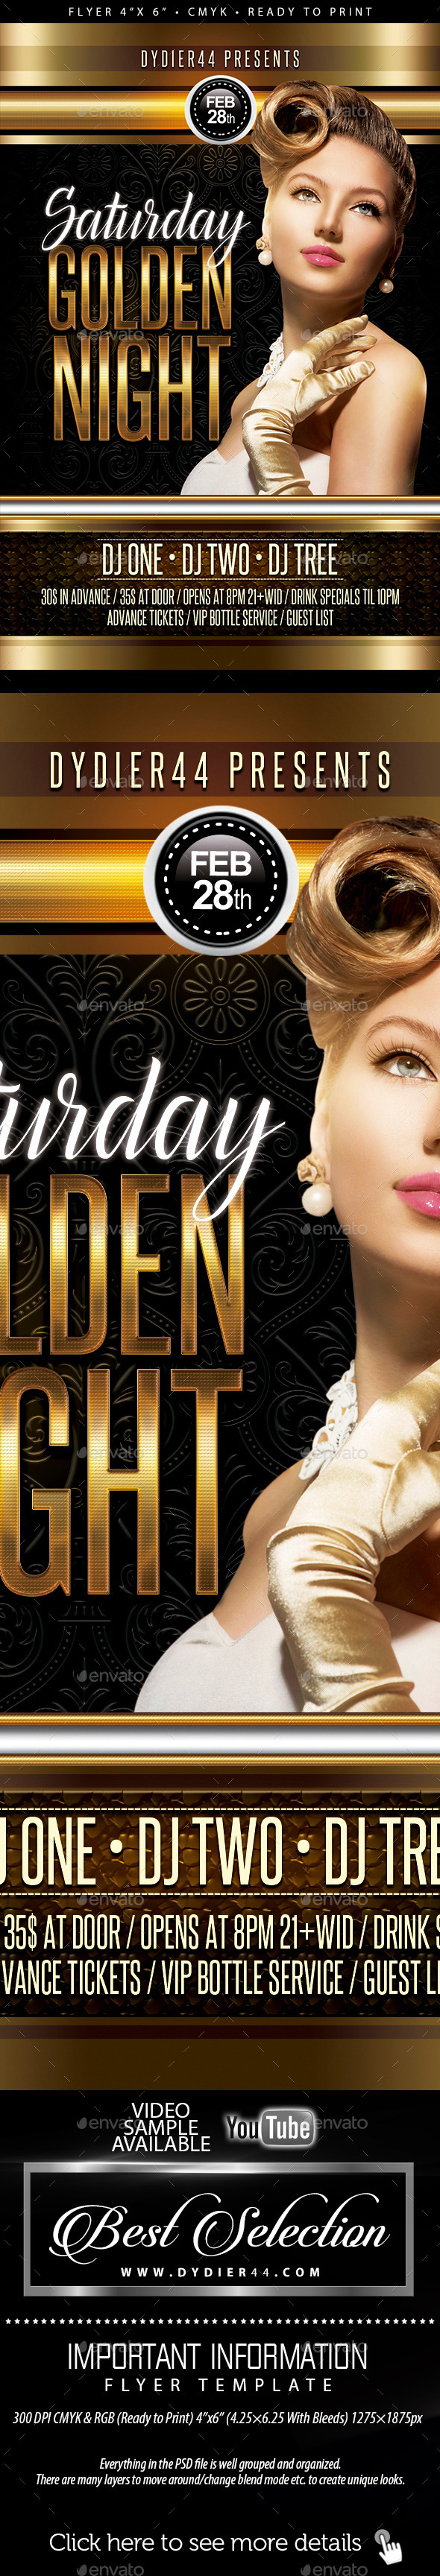 Saturday Golden Nights (Flyer Template 4x6) - Clubs & Parties Events